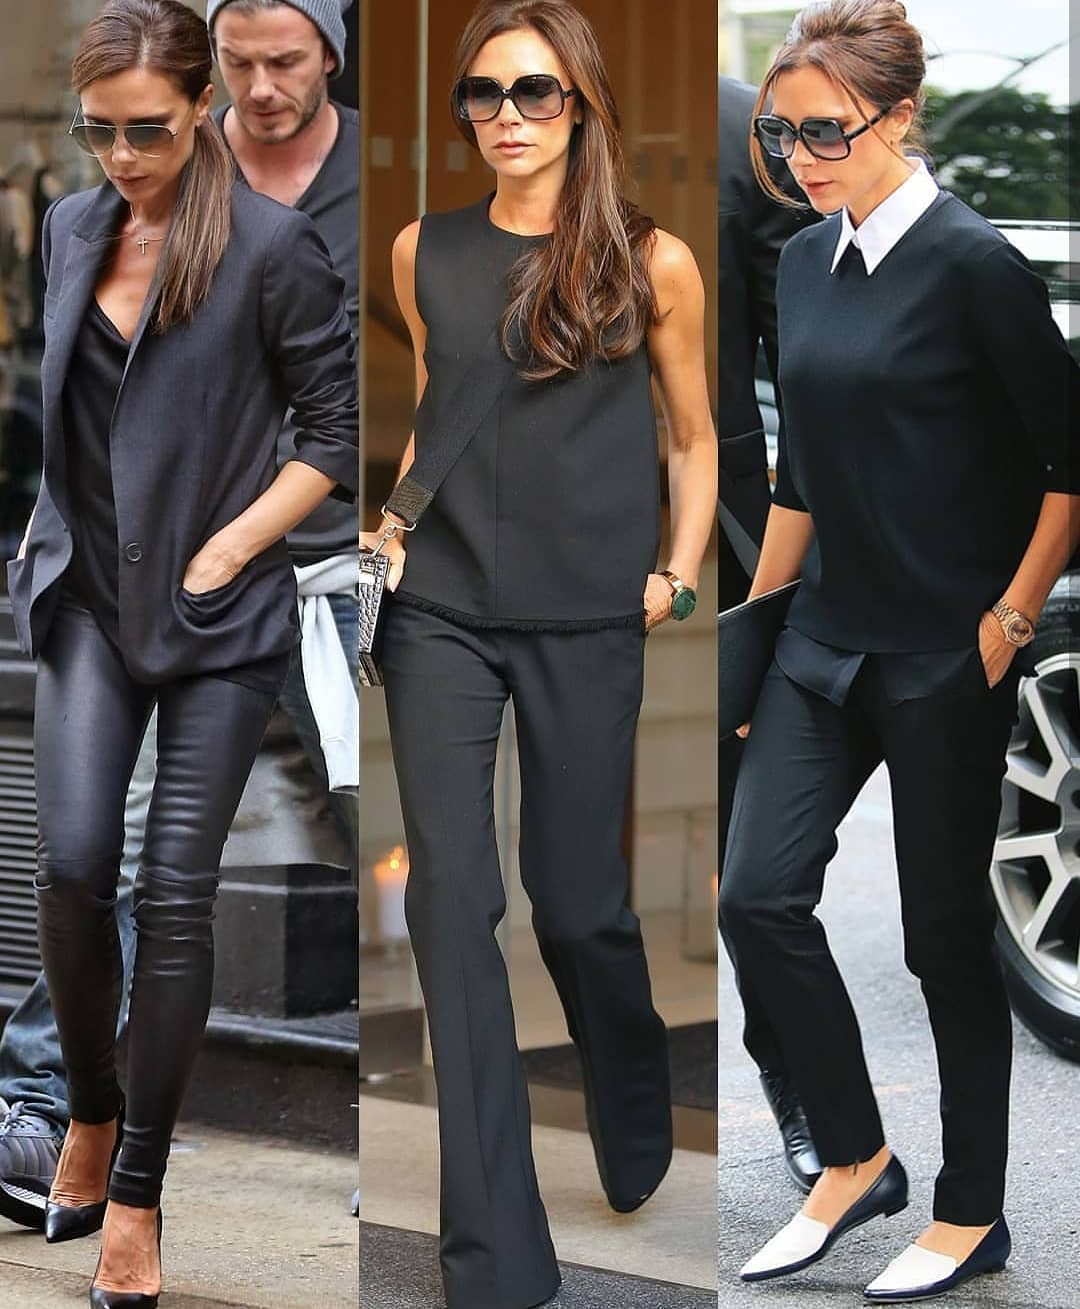 Victoria Beckham Wearing All Black Outfit Ideas 2020